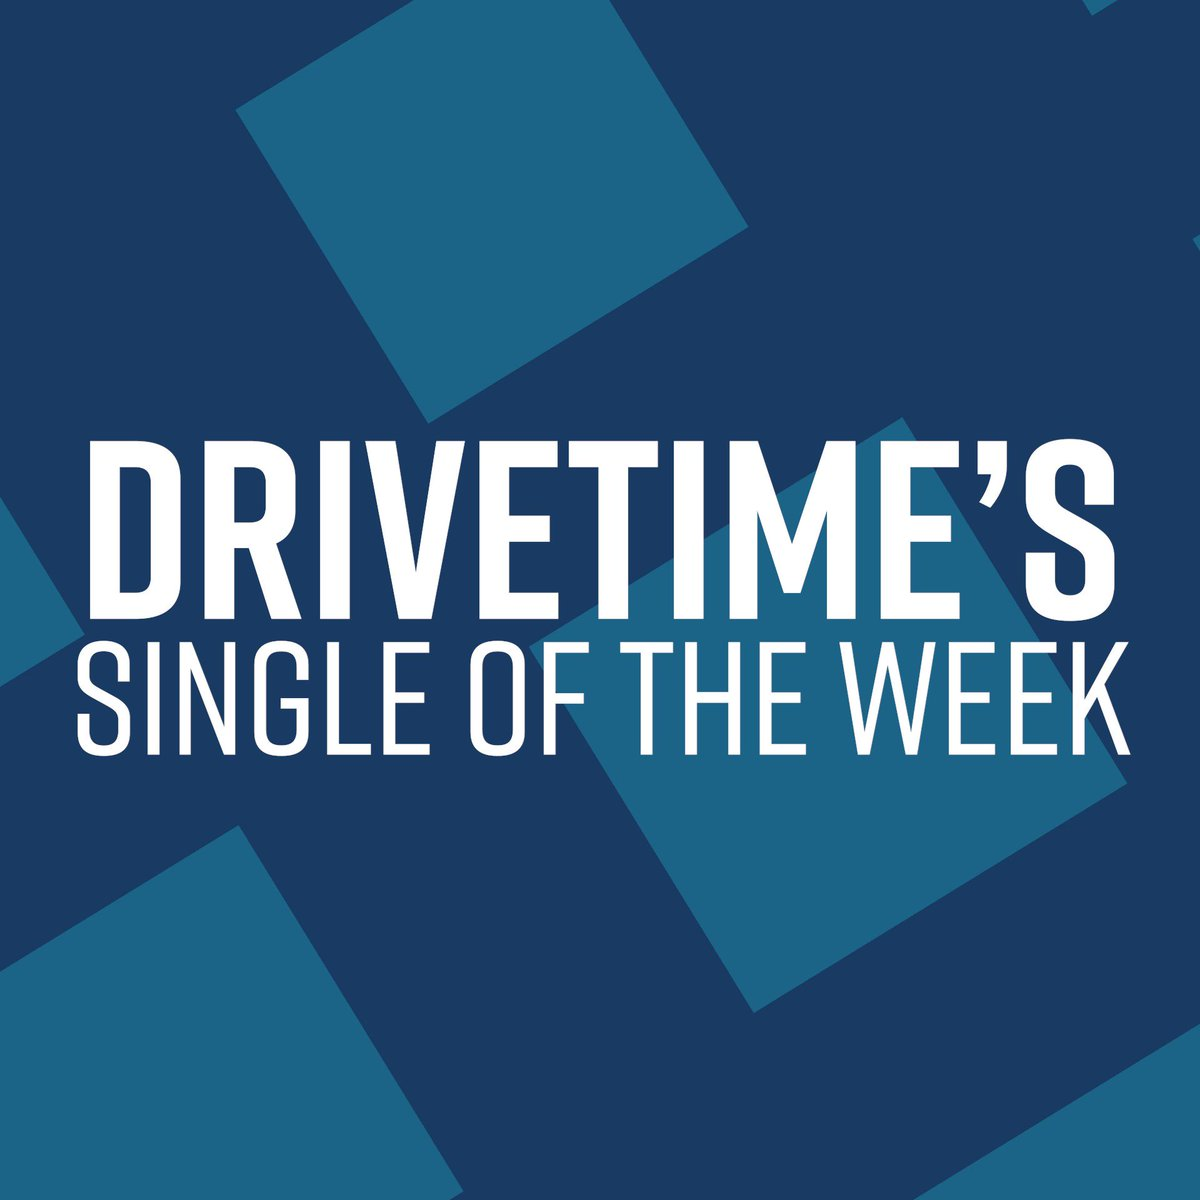 The 39th Single of The Week for this year is 'Dragonball' by @mcflymusic! Hear it all this week on Drivetime and hear all of this year's Singles of The Week on the website wycso.org.uk @ProducerLuke_ #WycSo 🤘